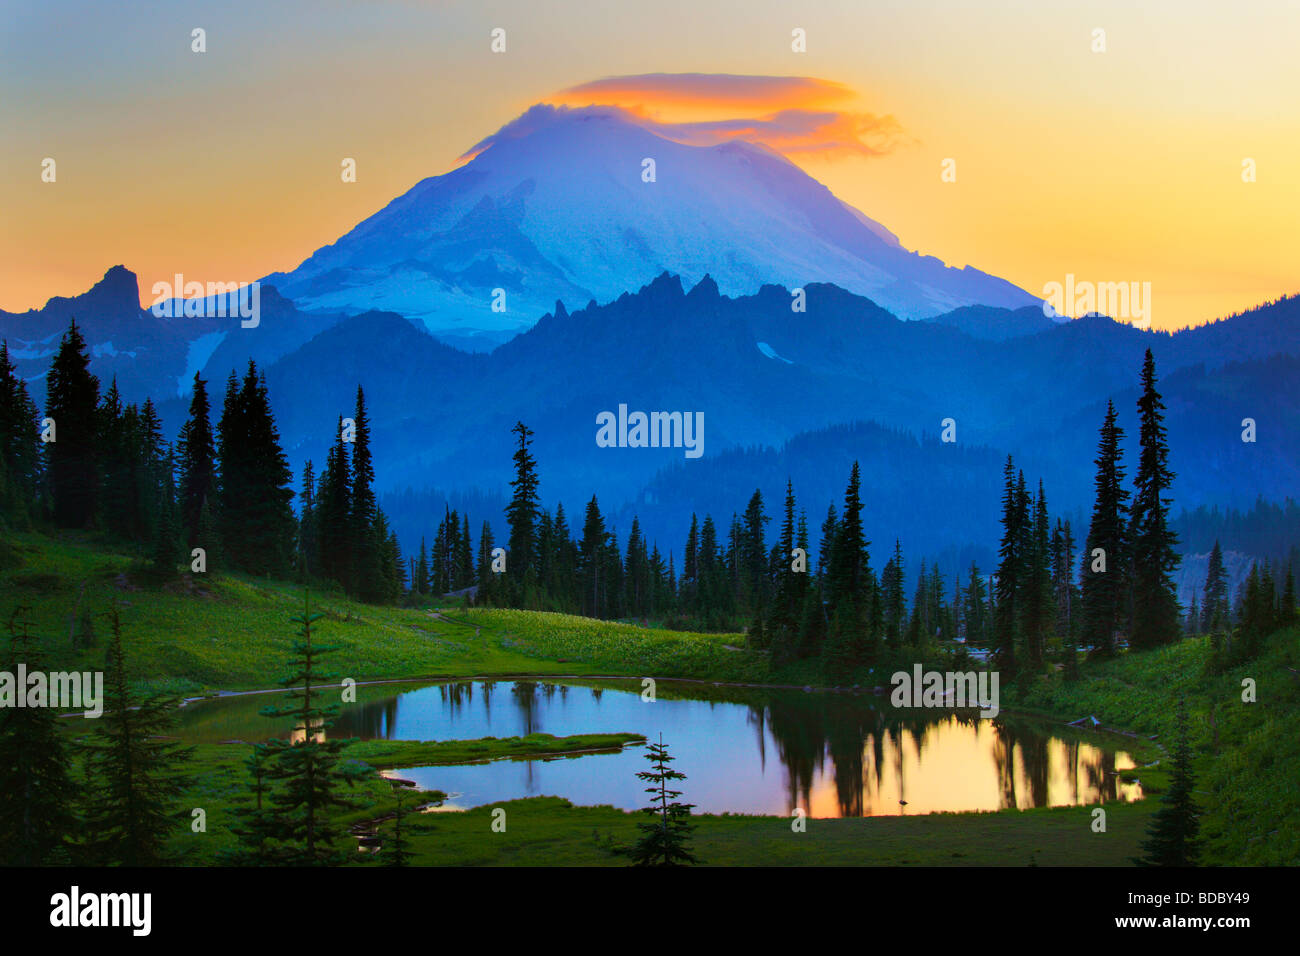 Mount Rainier at sunset from Tipsoo Lake - Stock Image